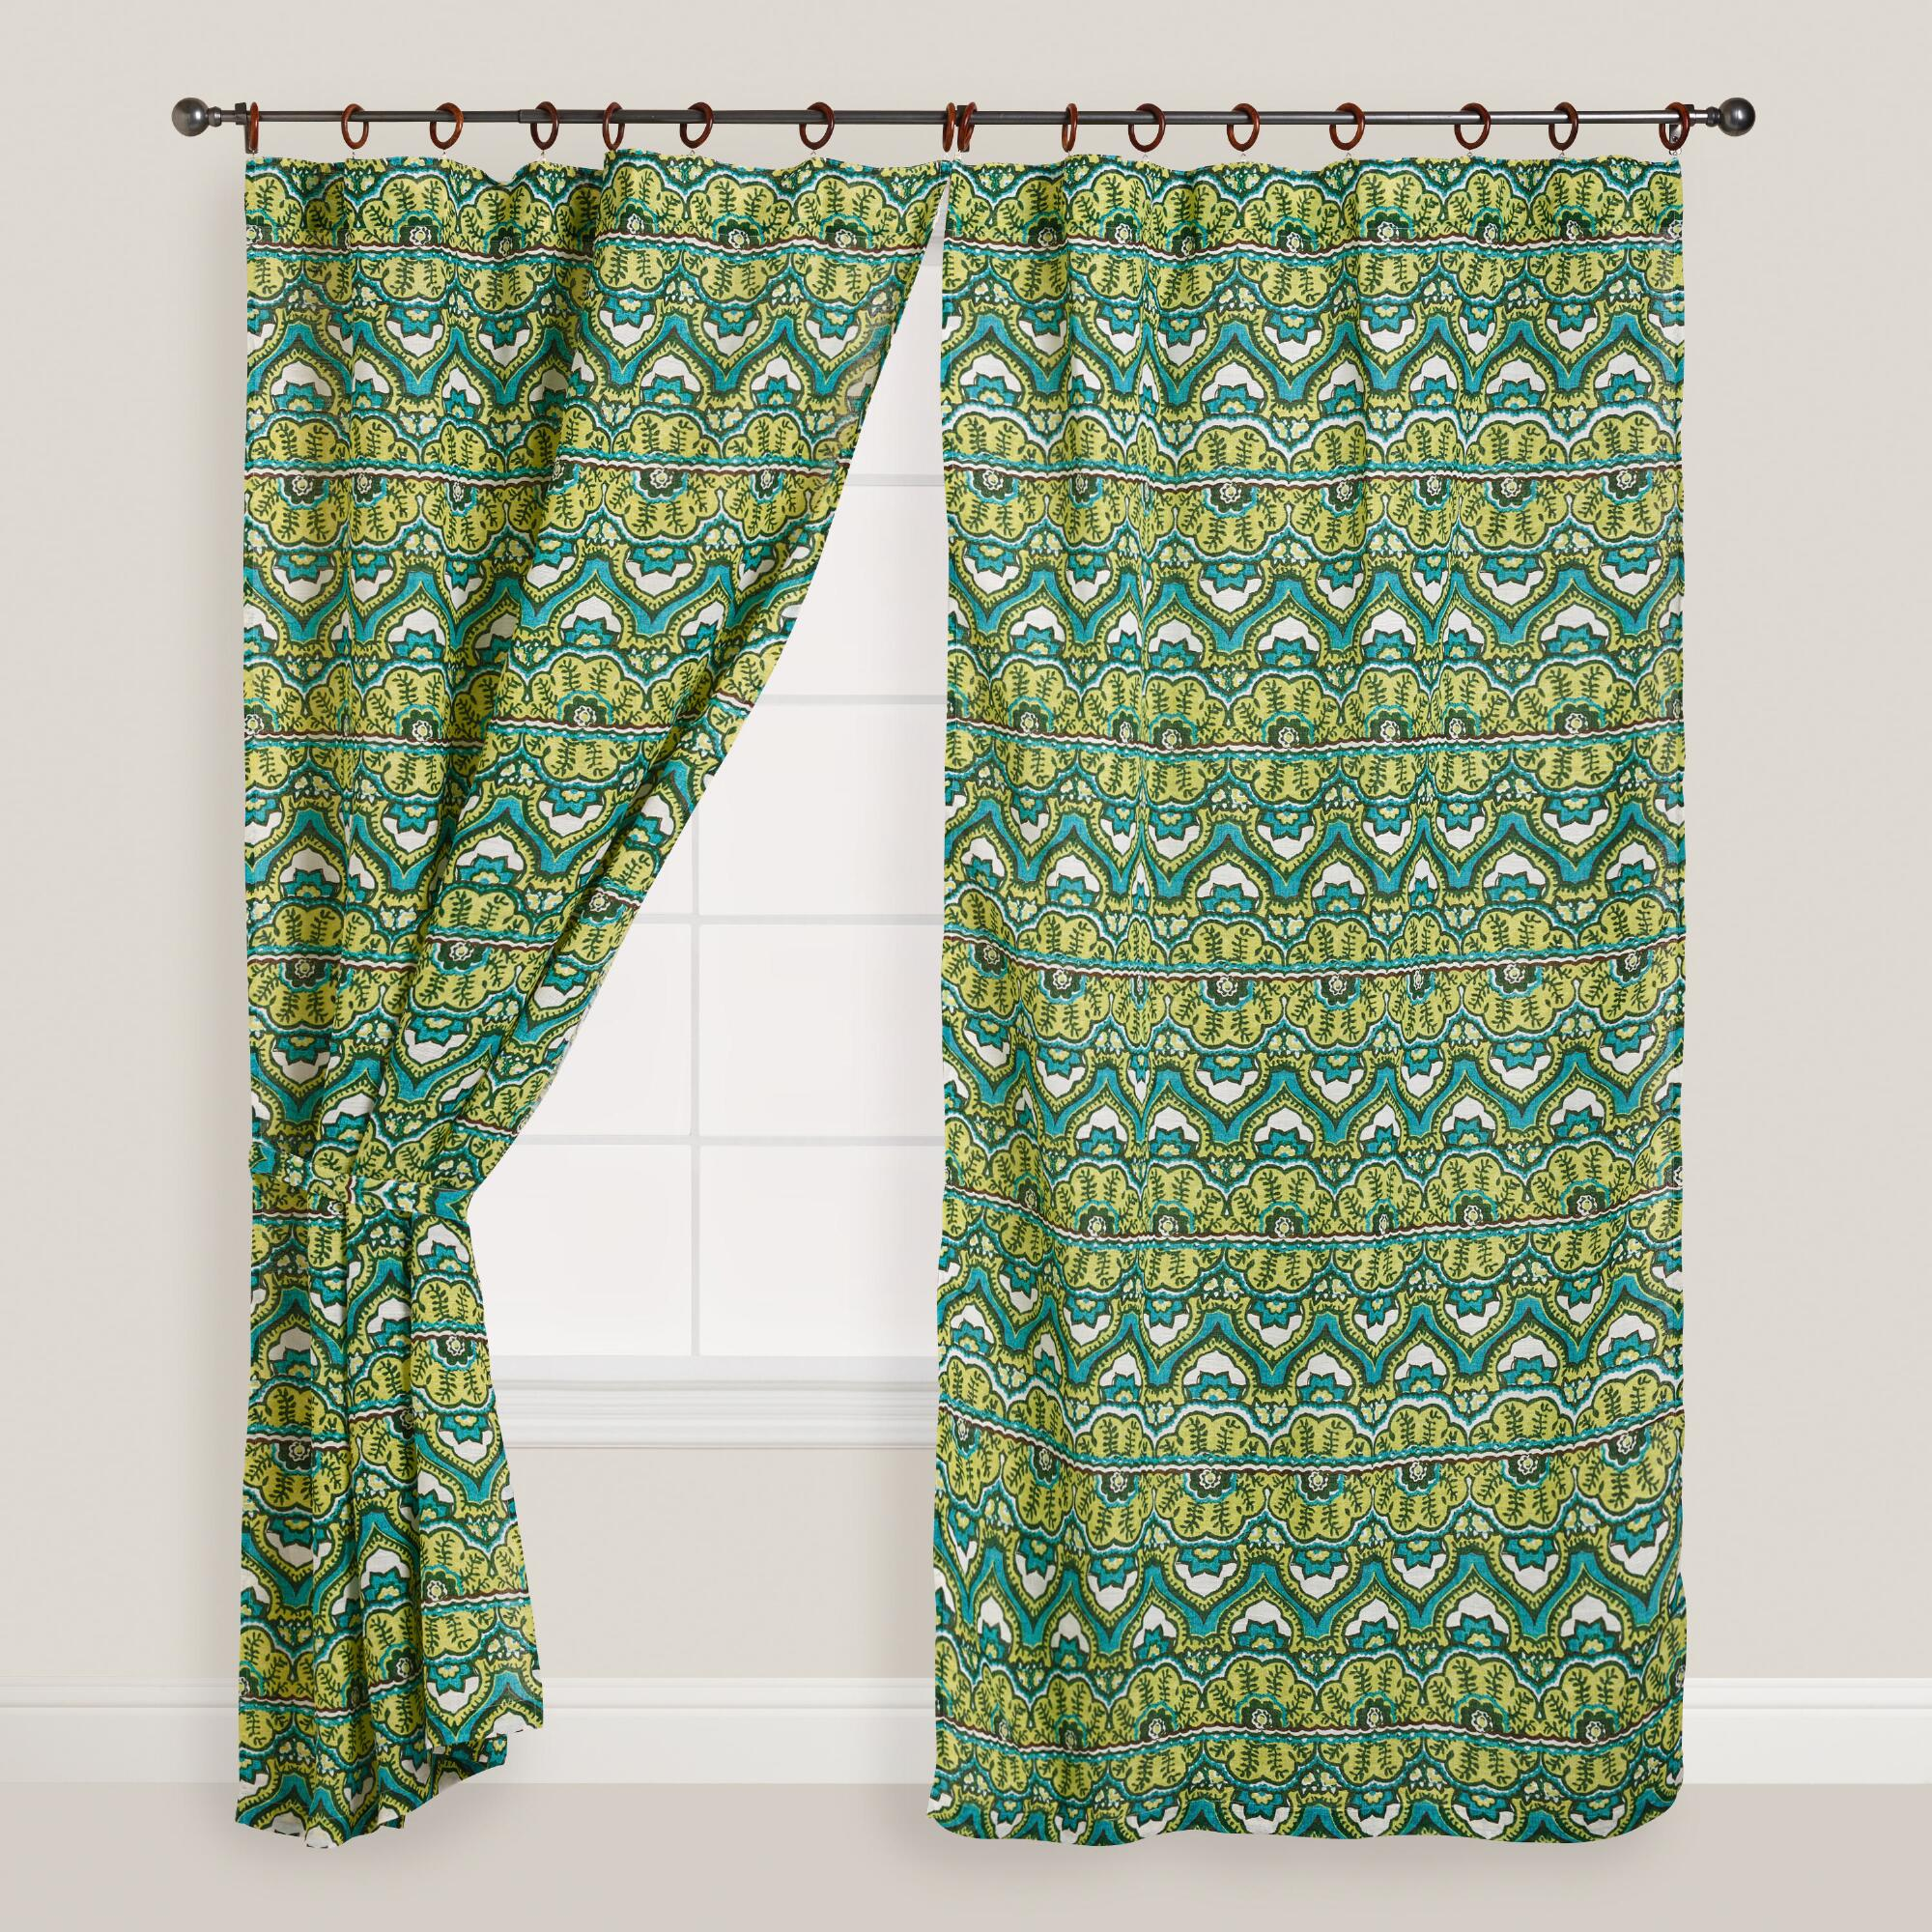 Green Bohemian Curtains from World Market